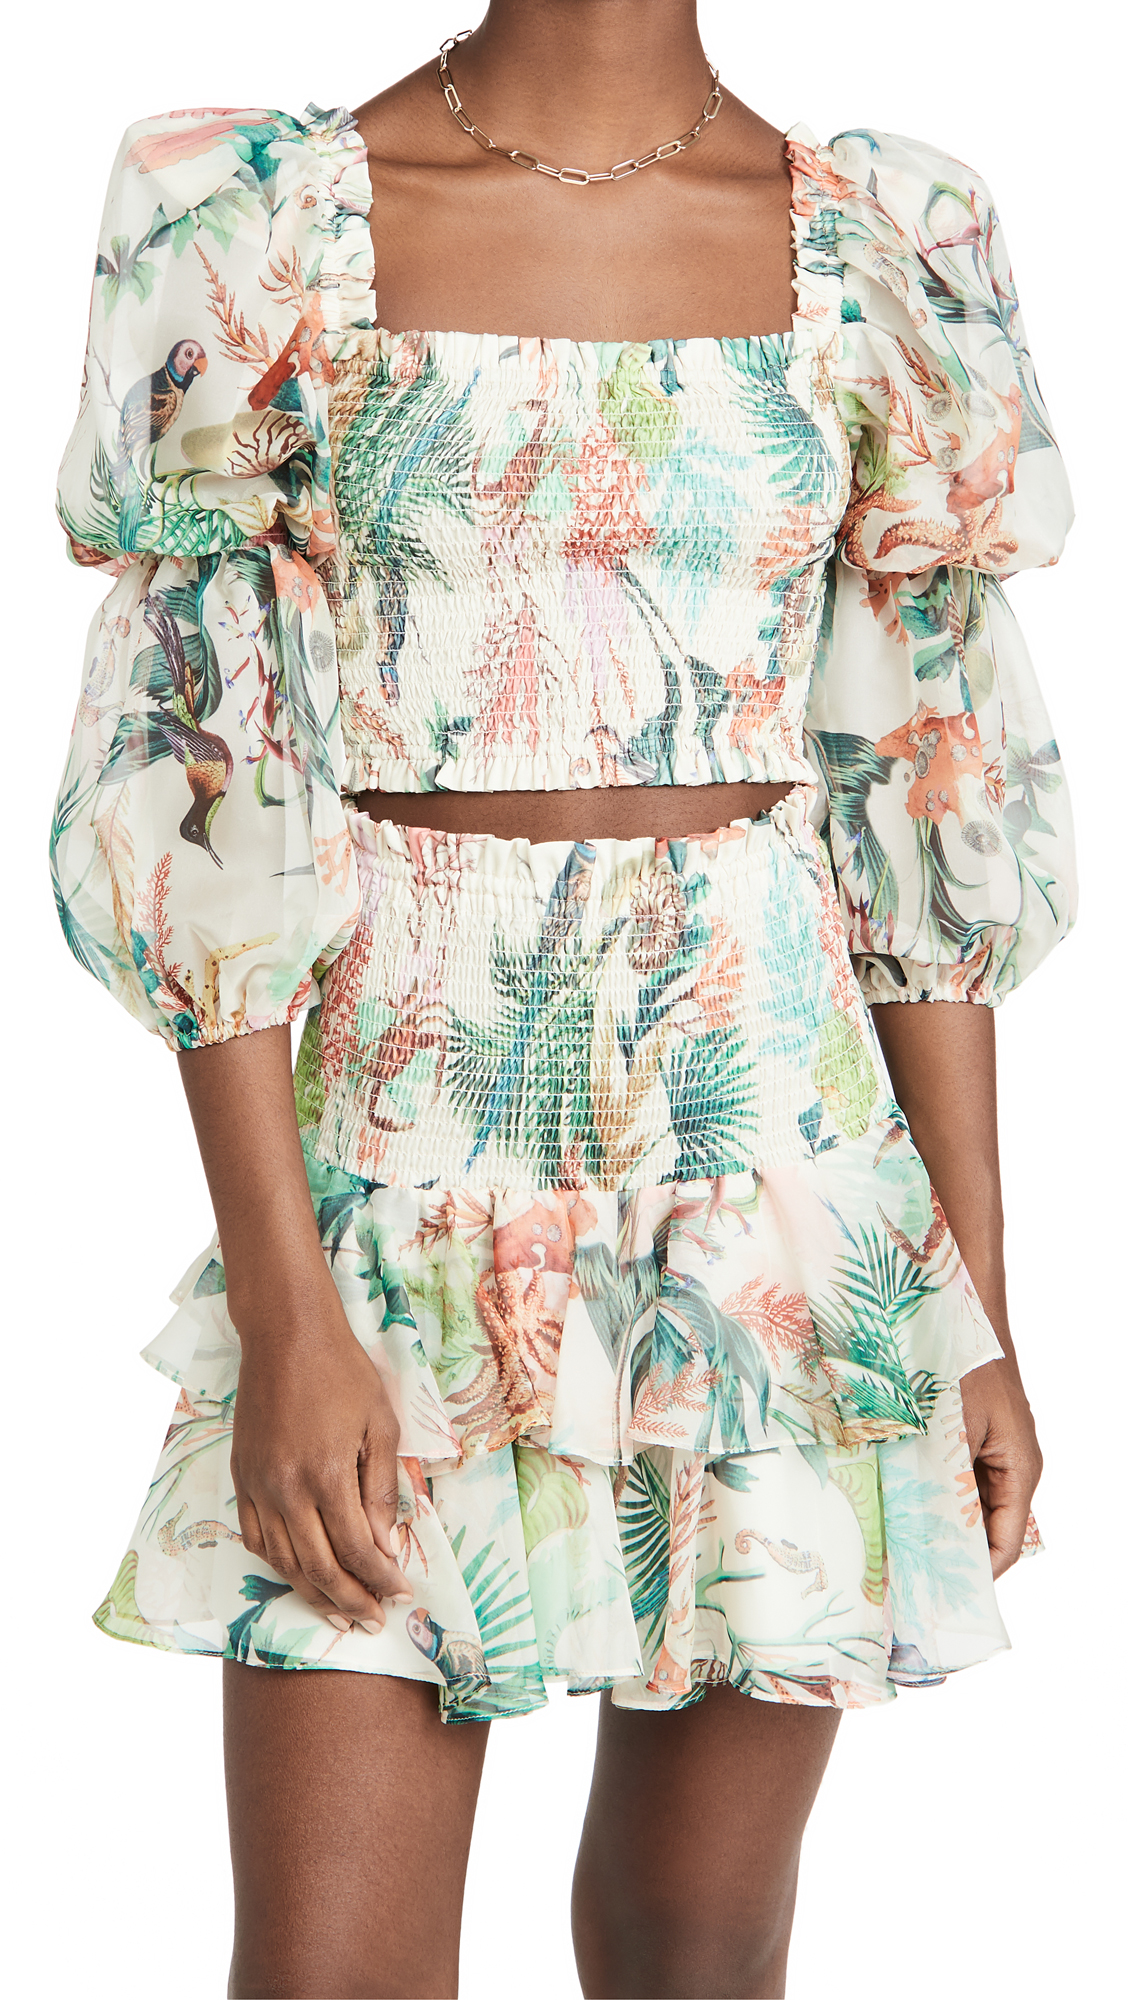 PatBO Oasis Shirred Cropped Top